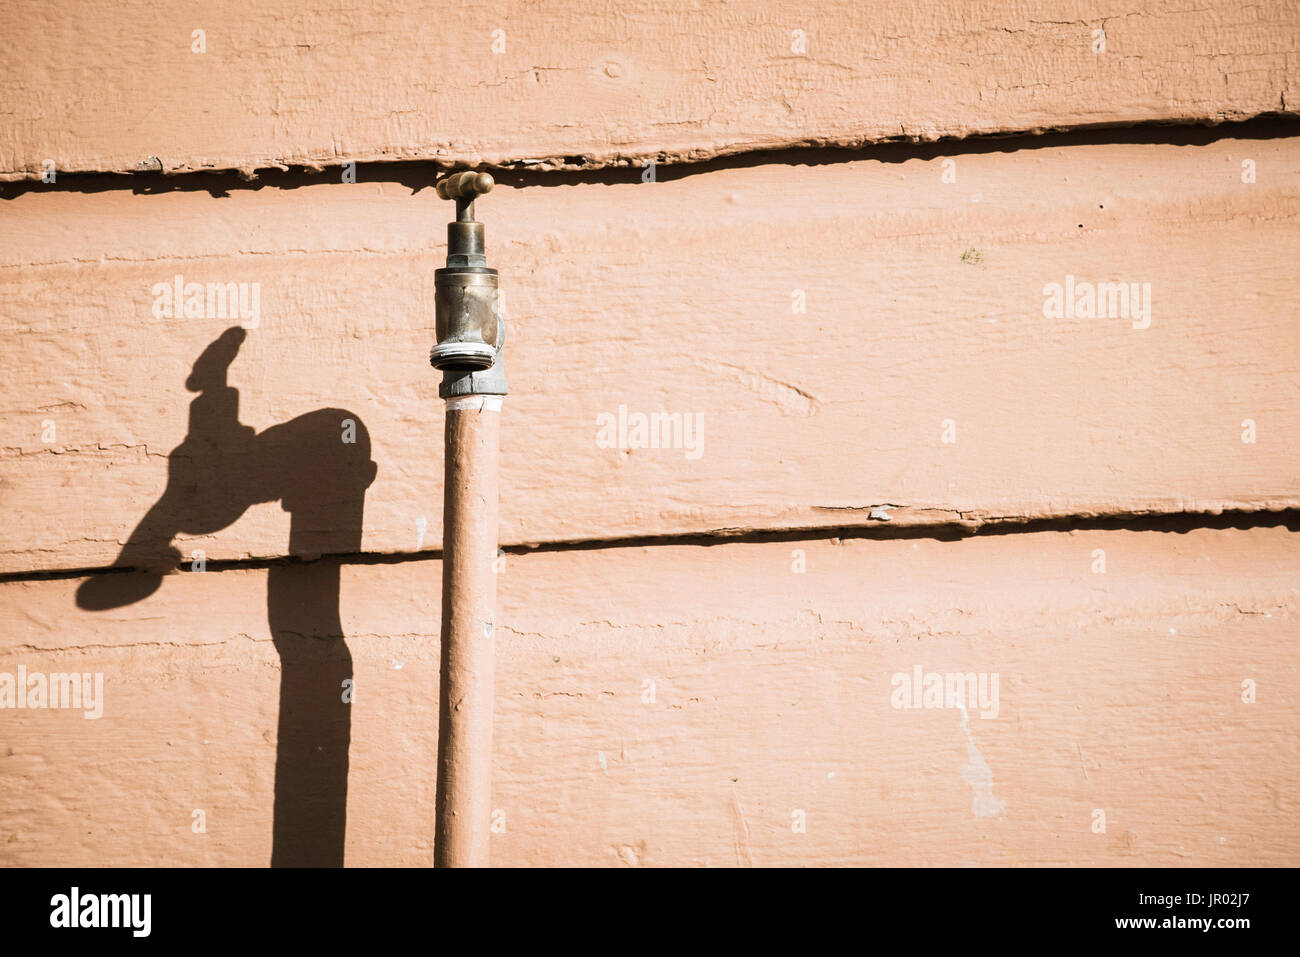 A single spigot or tap or faucet up against a timber wall in direct sunlight - Stock Image